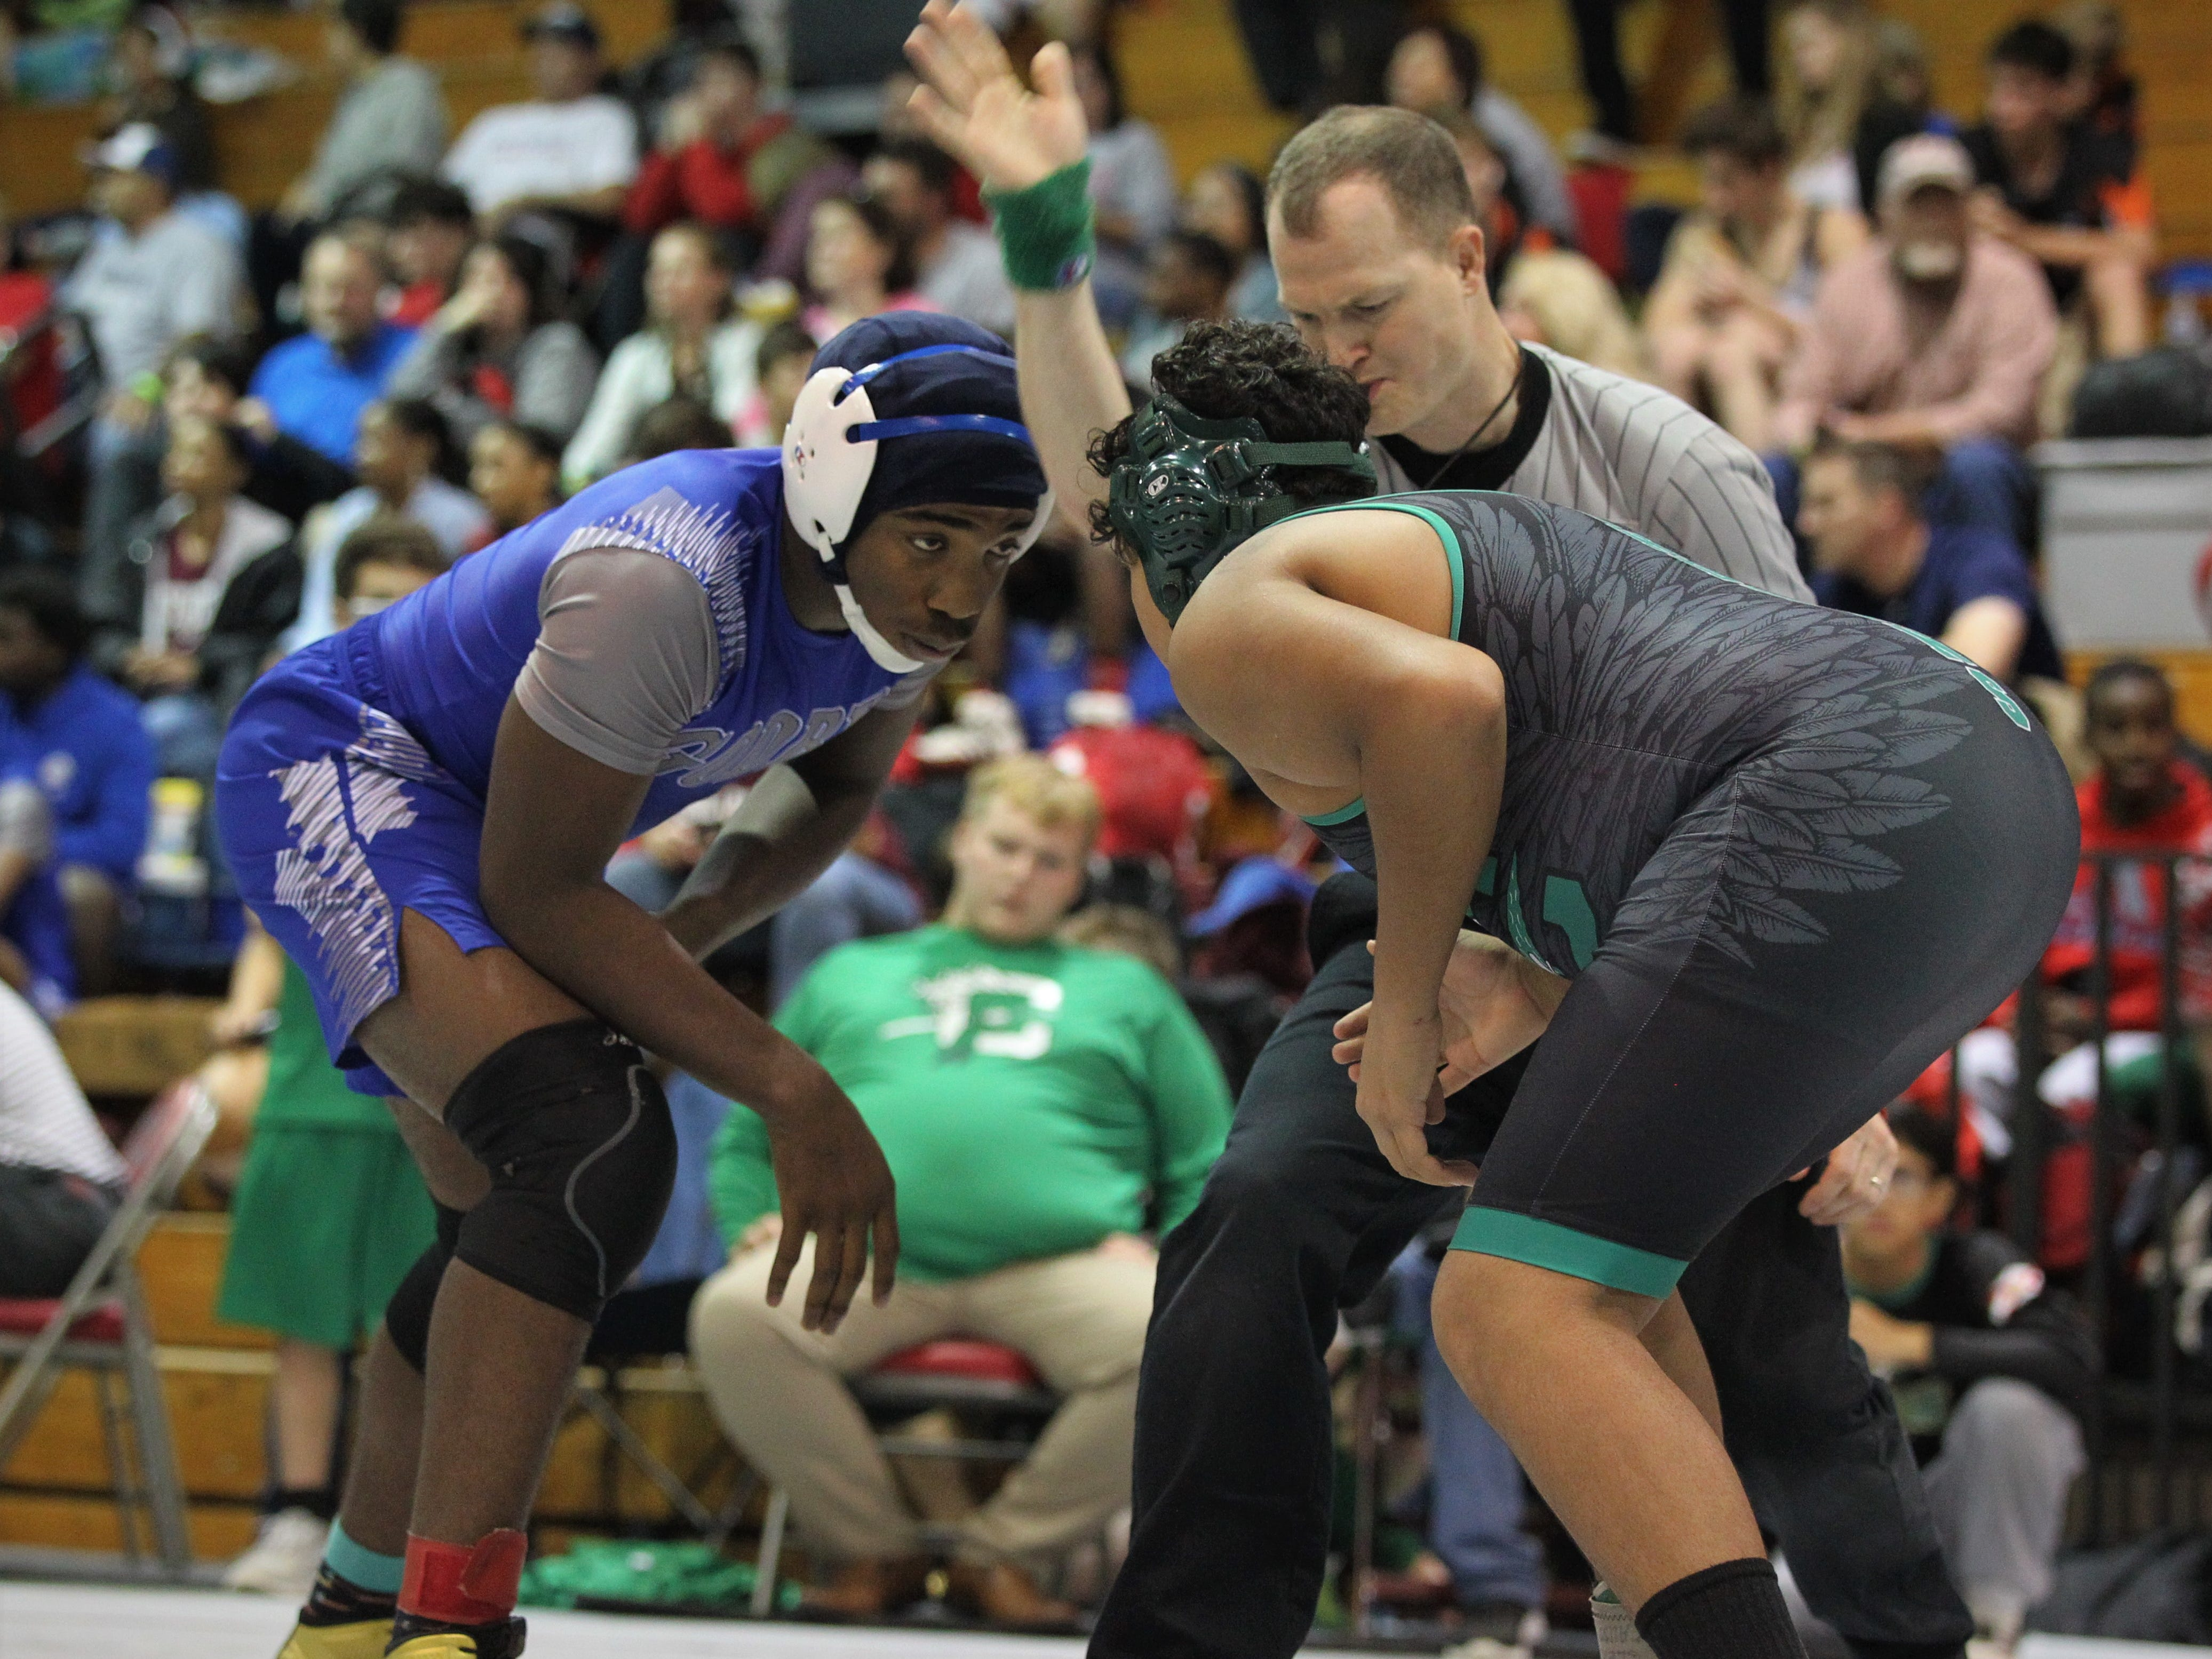 Godby's Julian Green prepares to wrestle at the 2018 Capital City Classic wrestling tournament at Chiles High School.